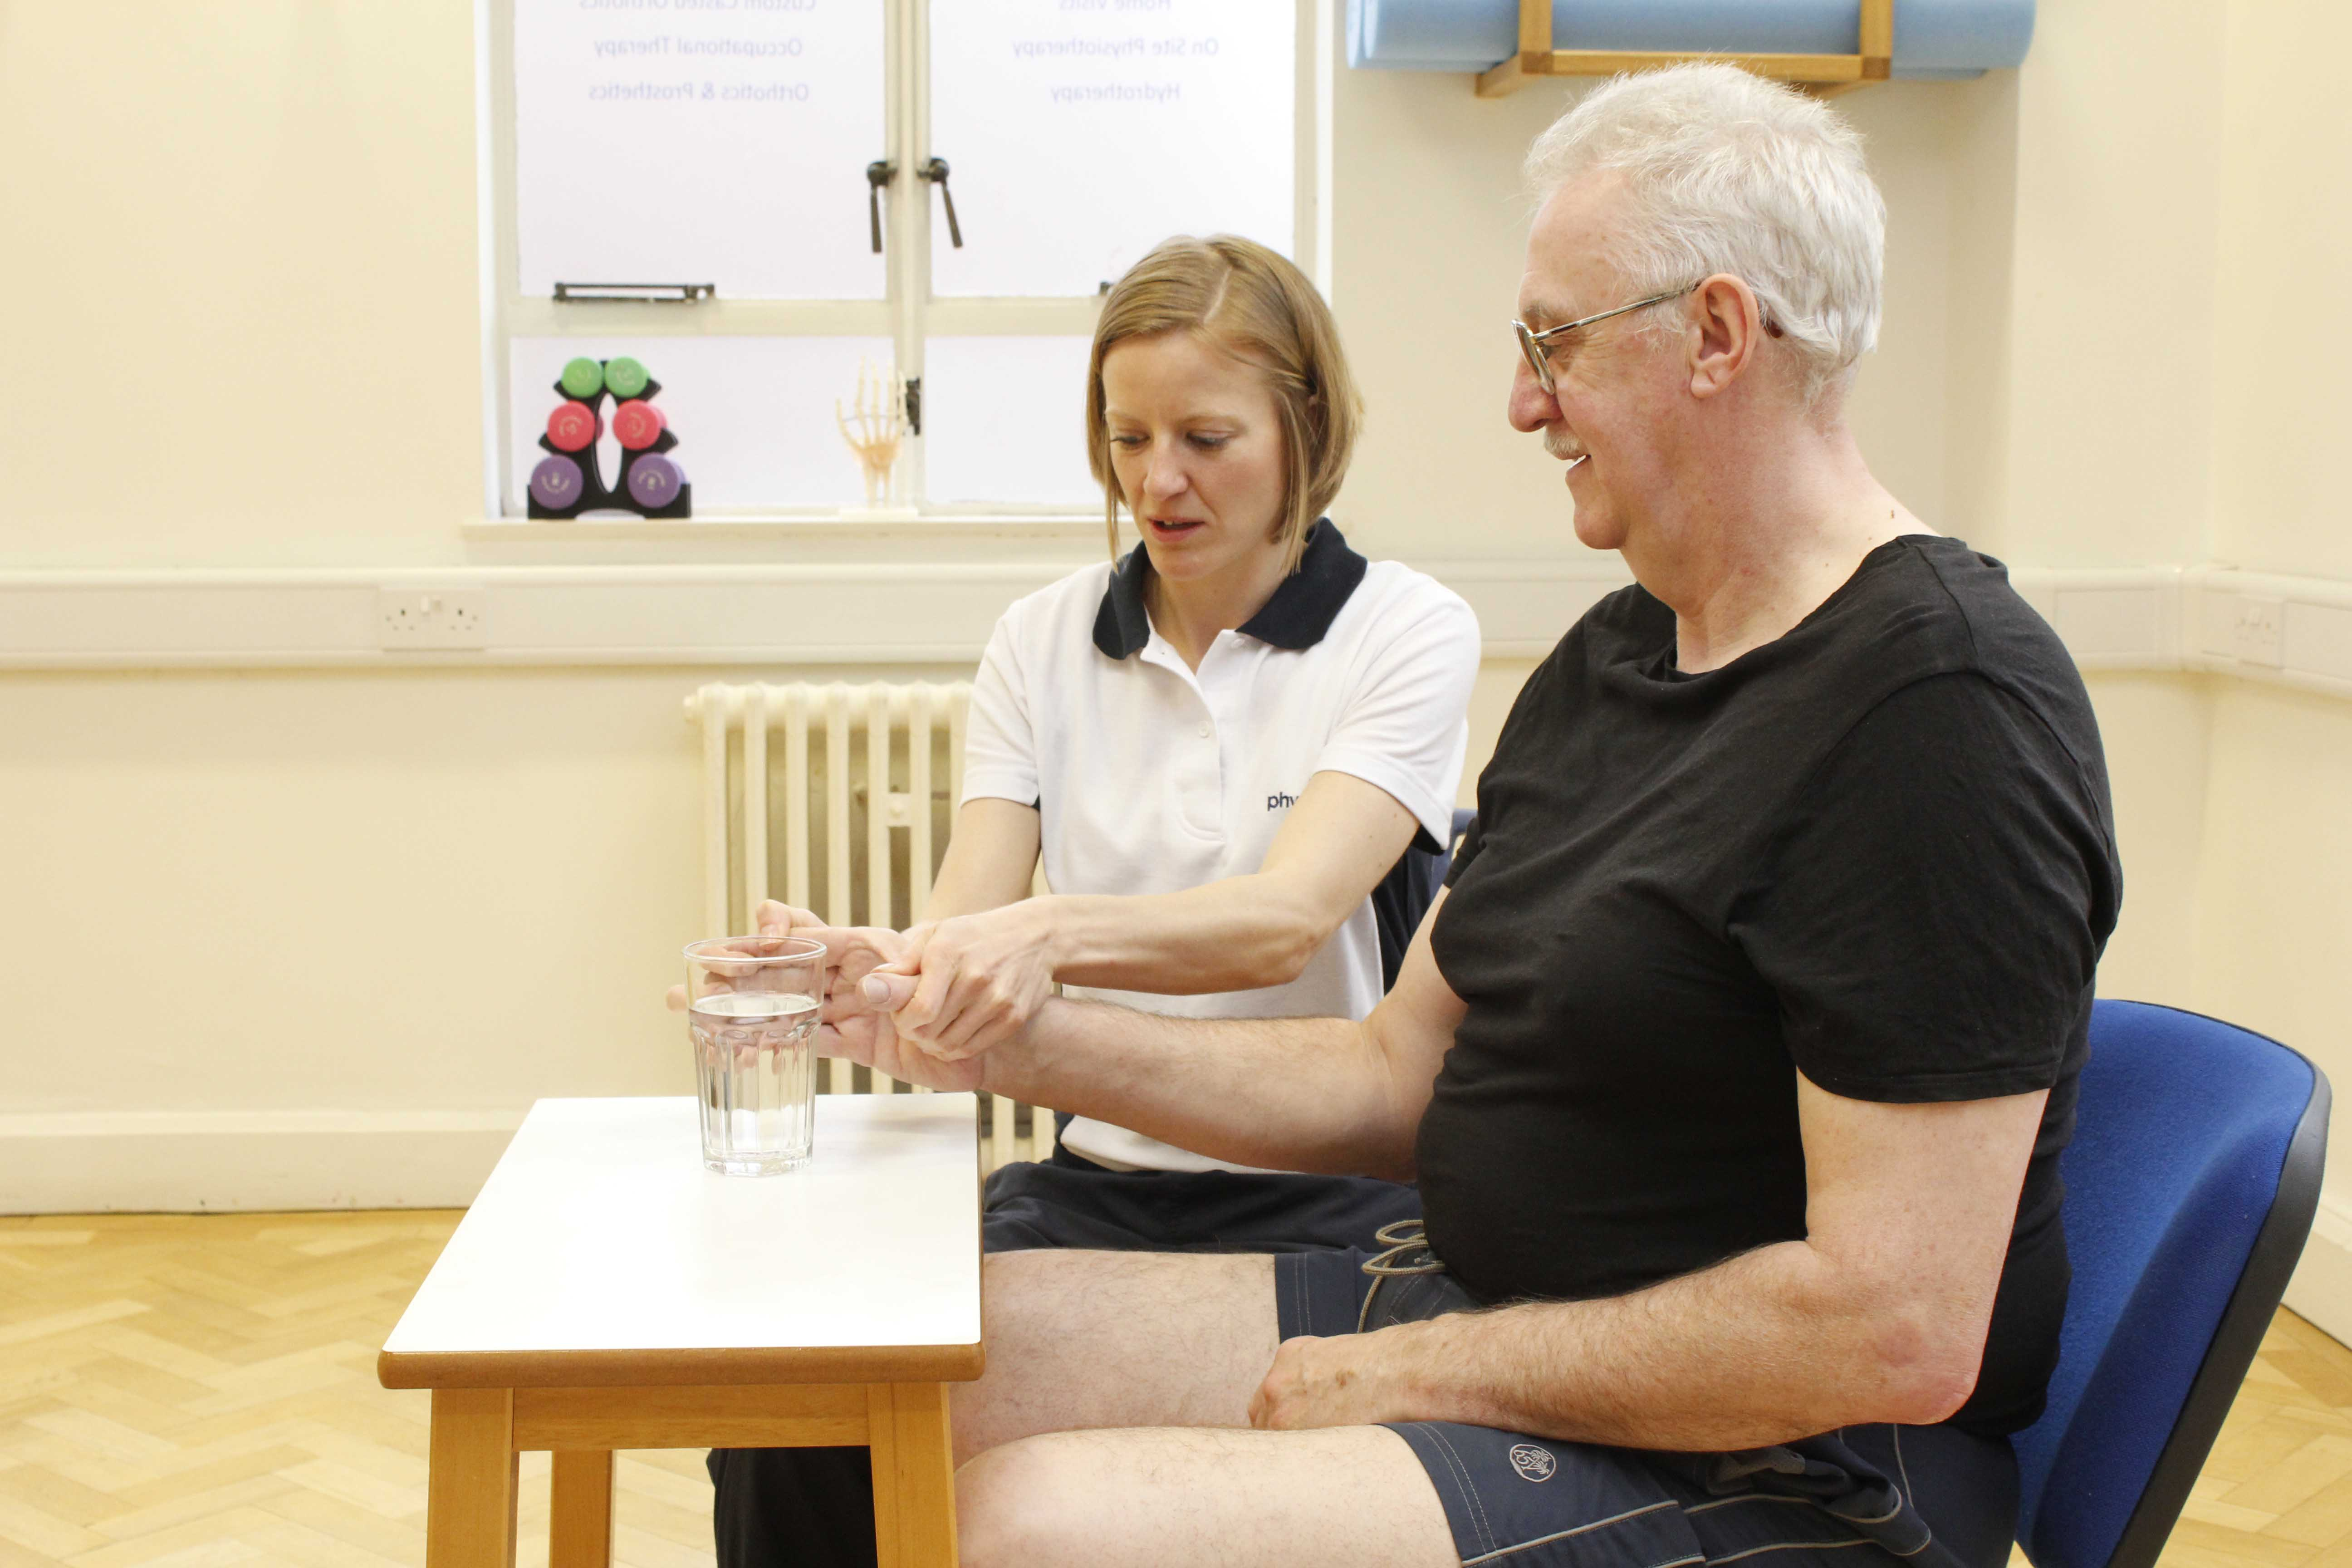 Functional rehabilitation exercises assisted by physiotherapist to regain independence